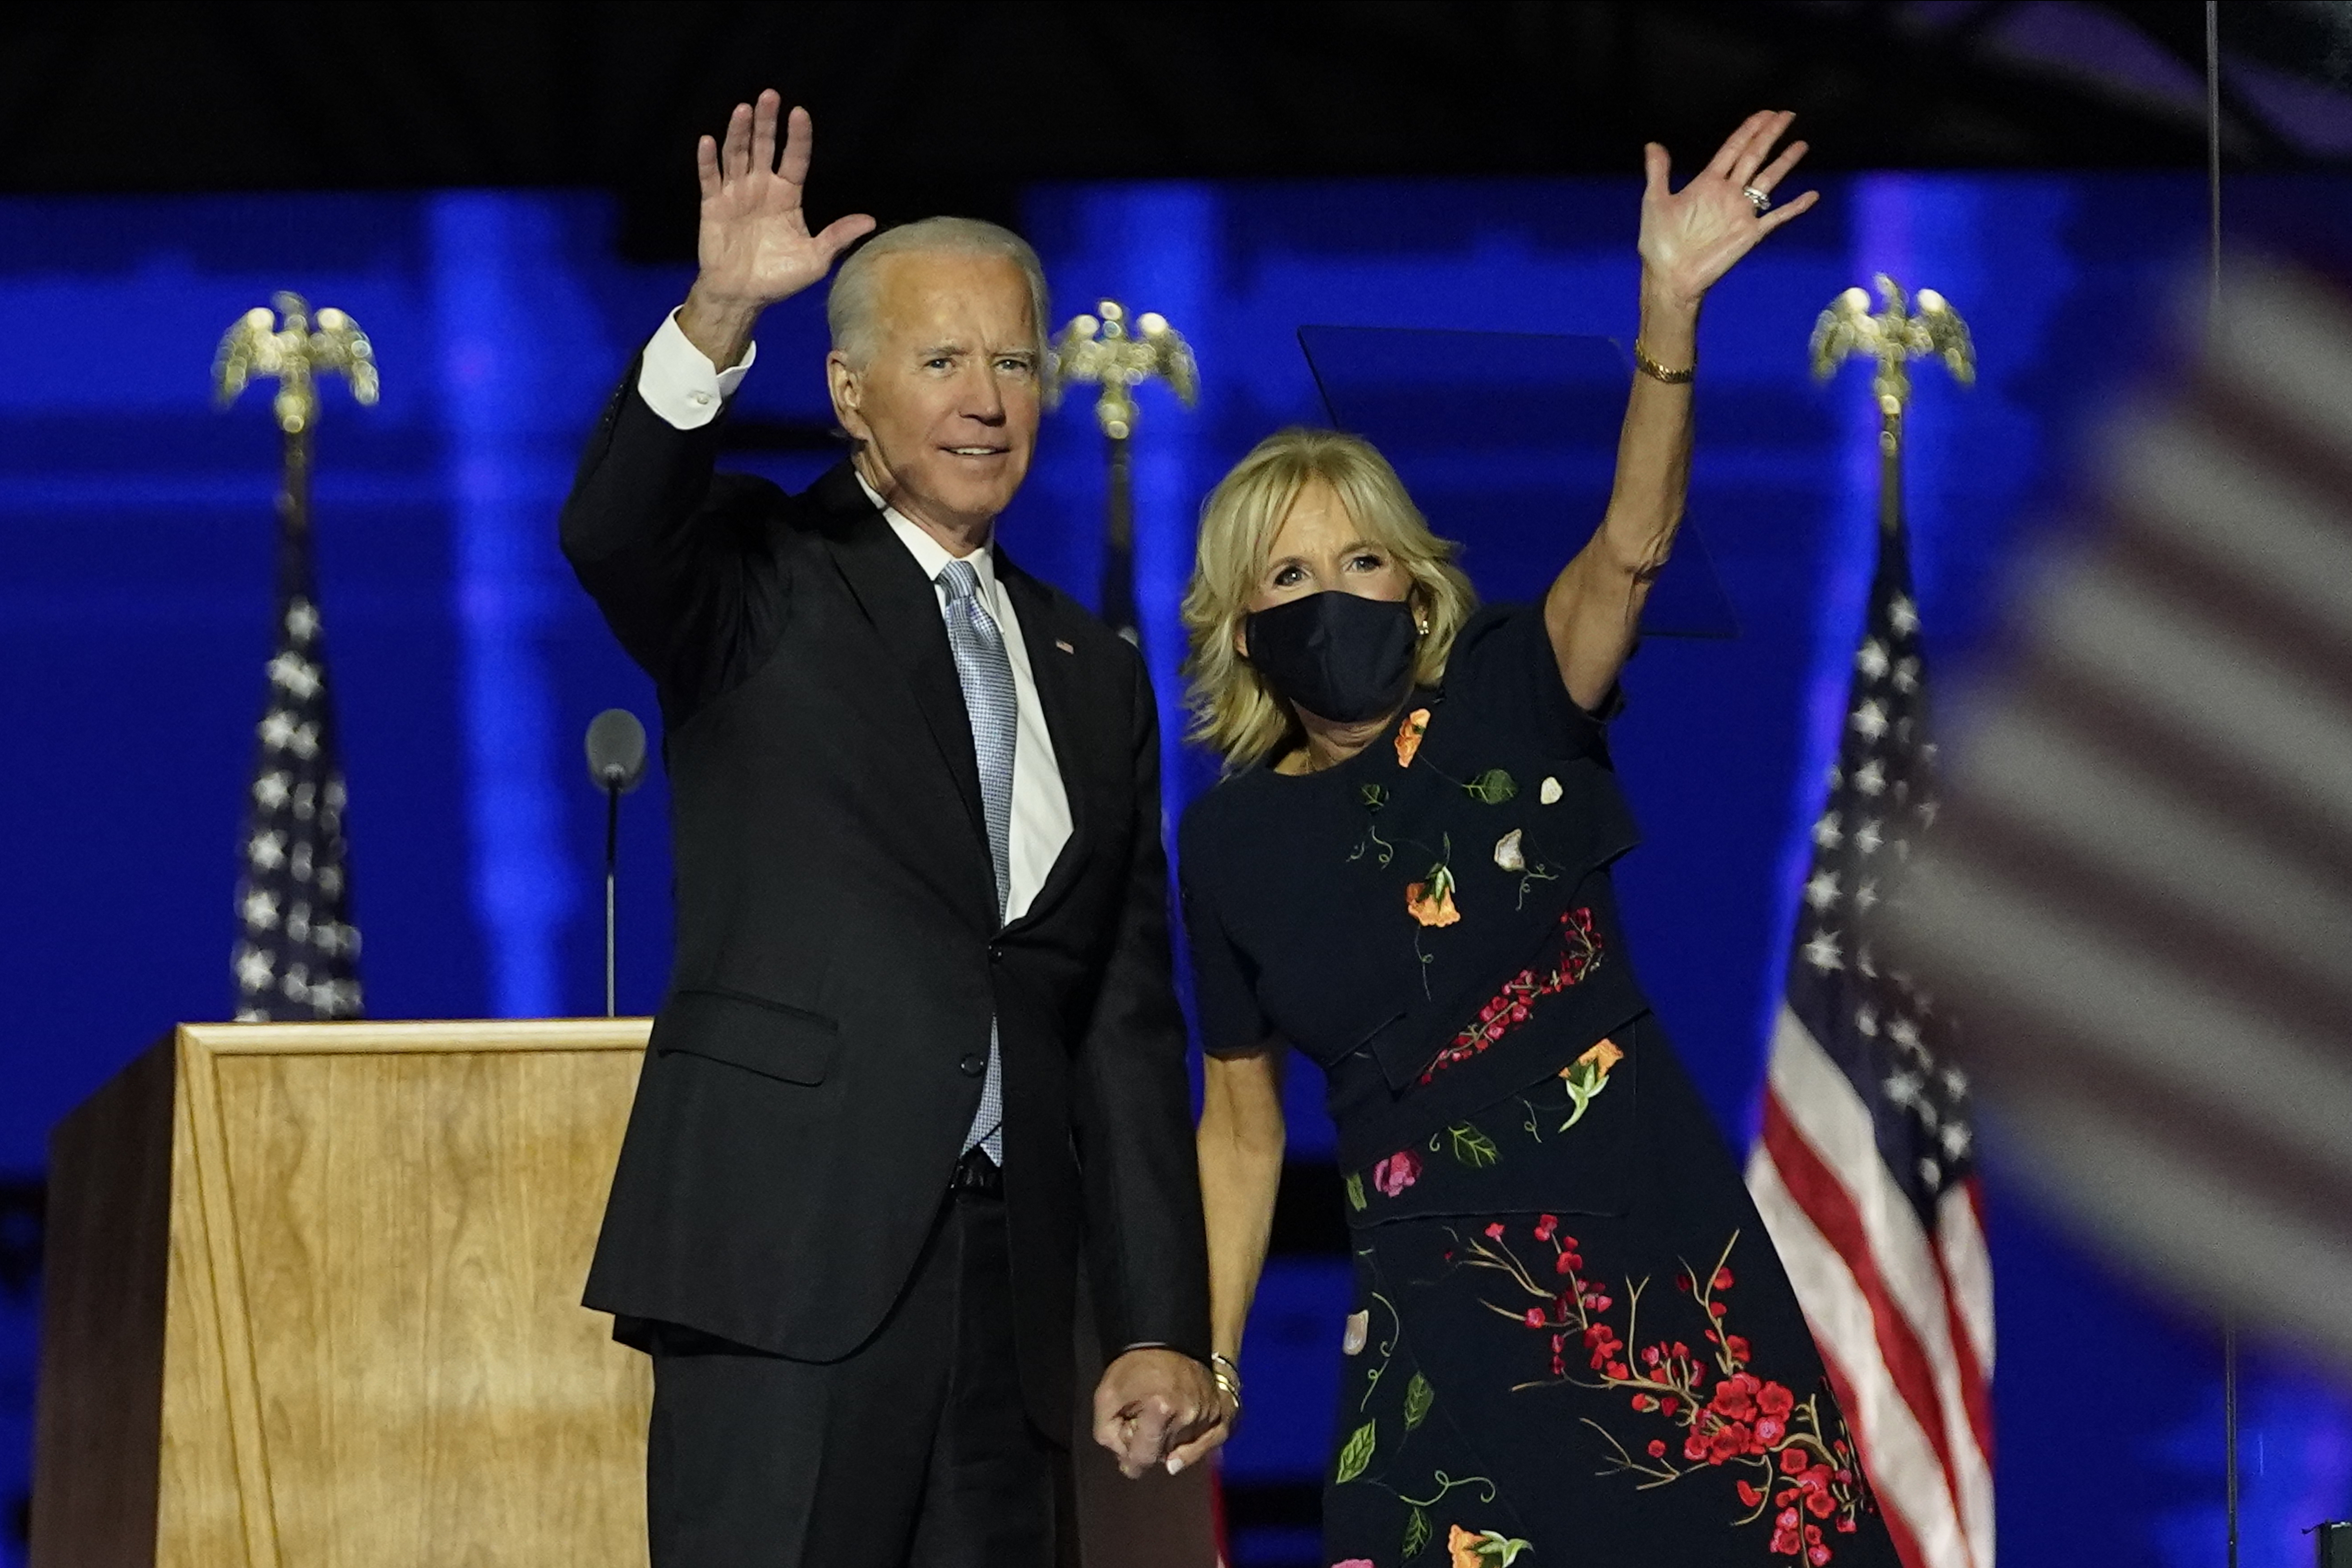 Jill Biden Would Be America's First FLOTUS To Have Full-Time Job